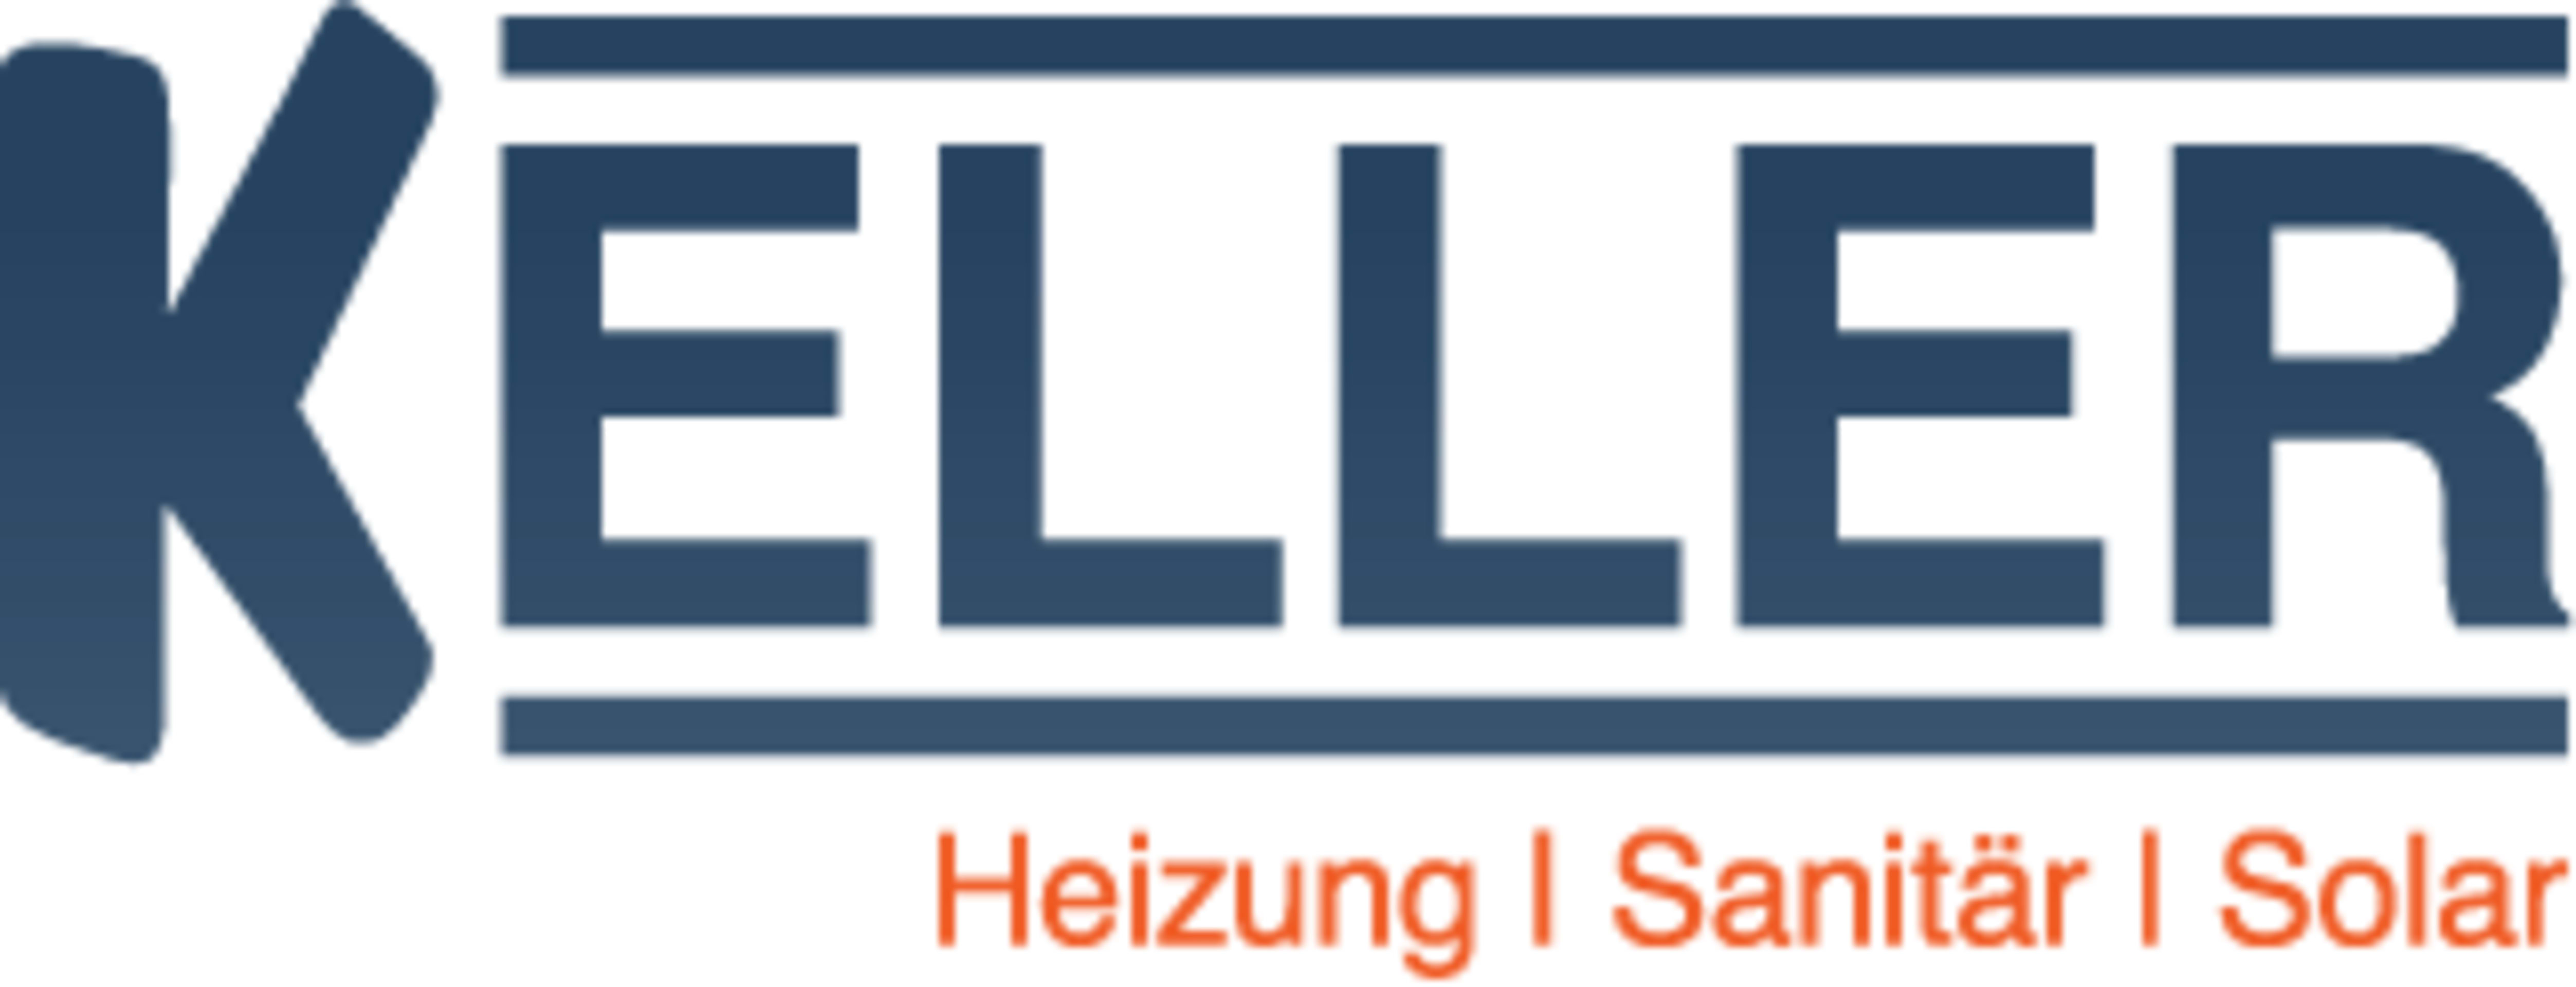 shows the logo from the company Helmut Keller GmbH